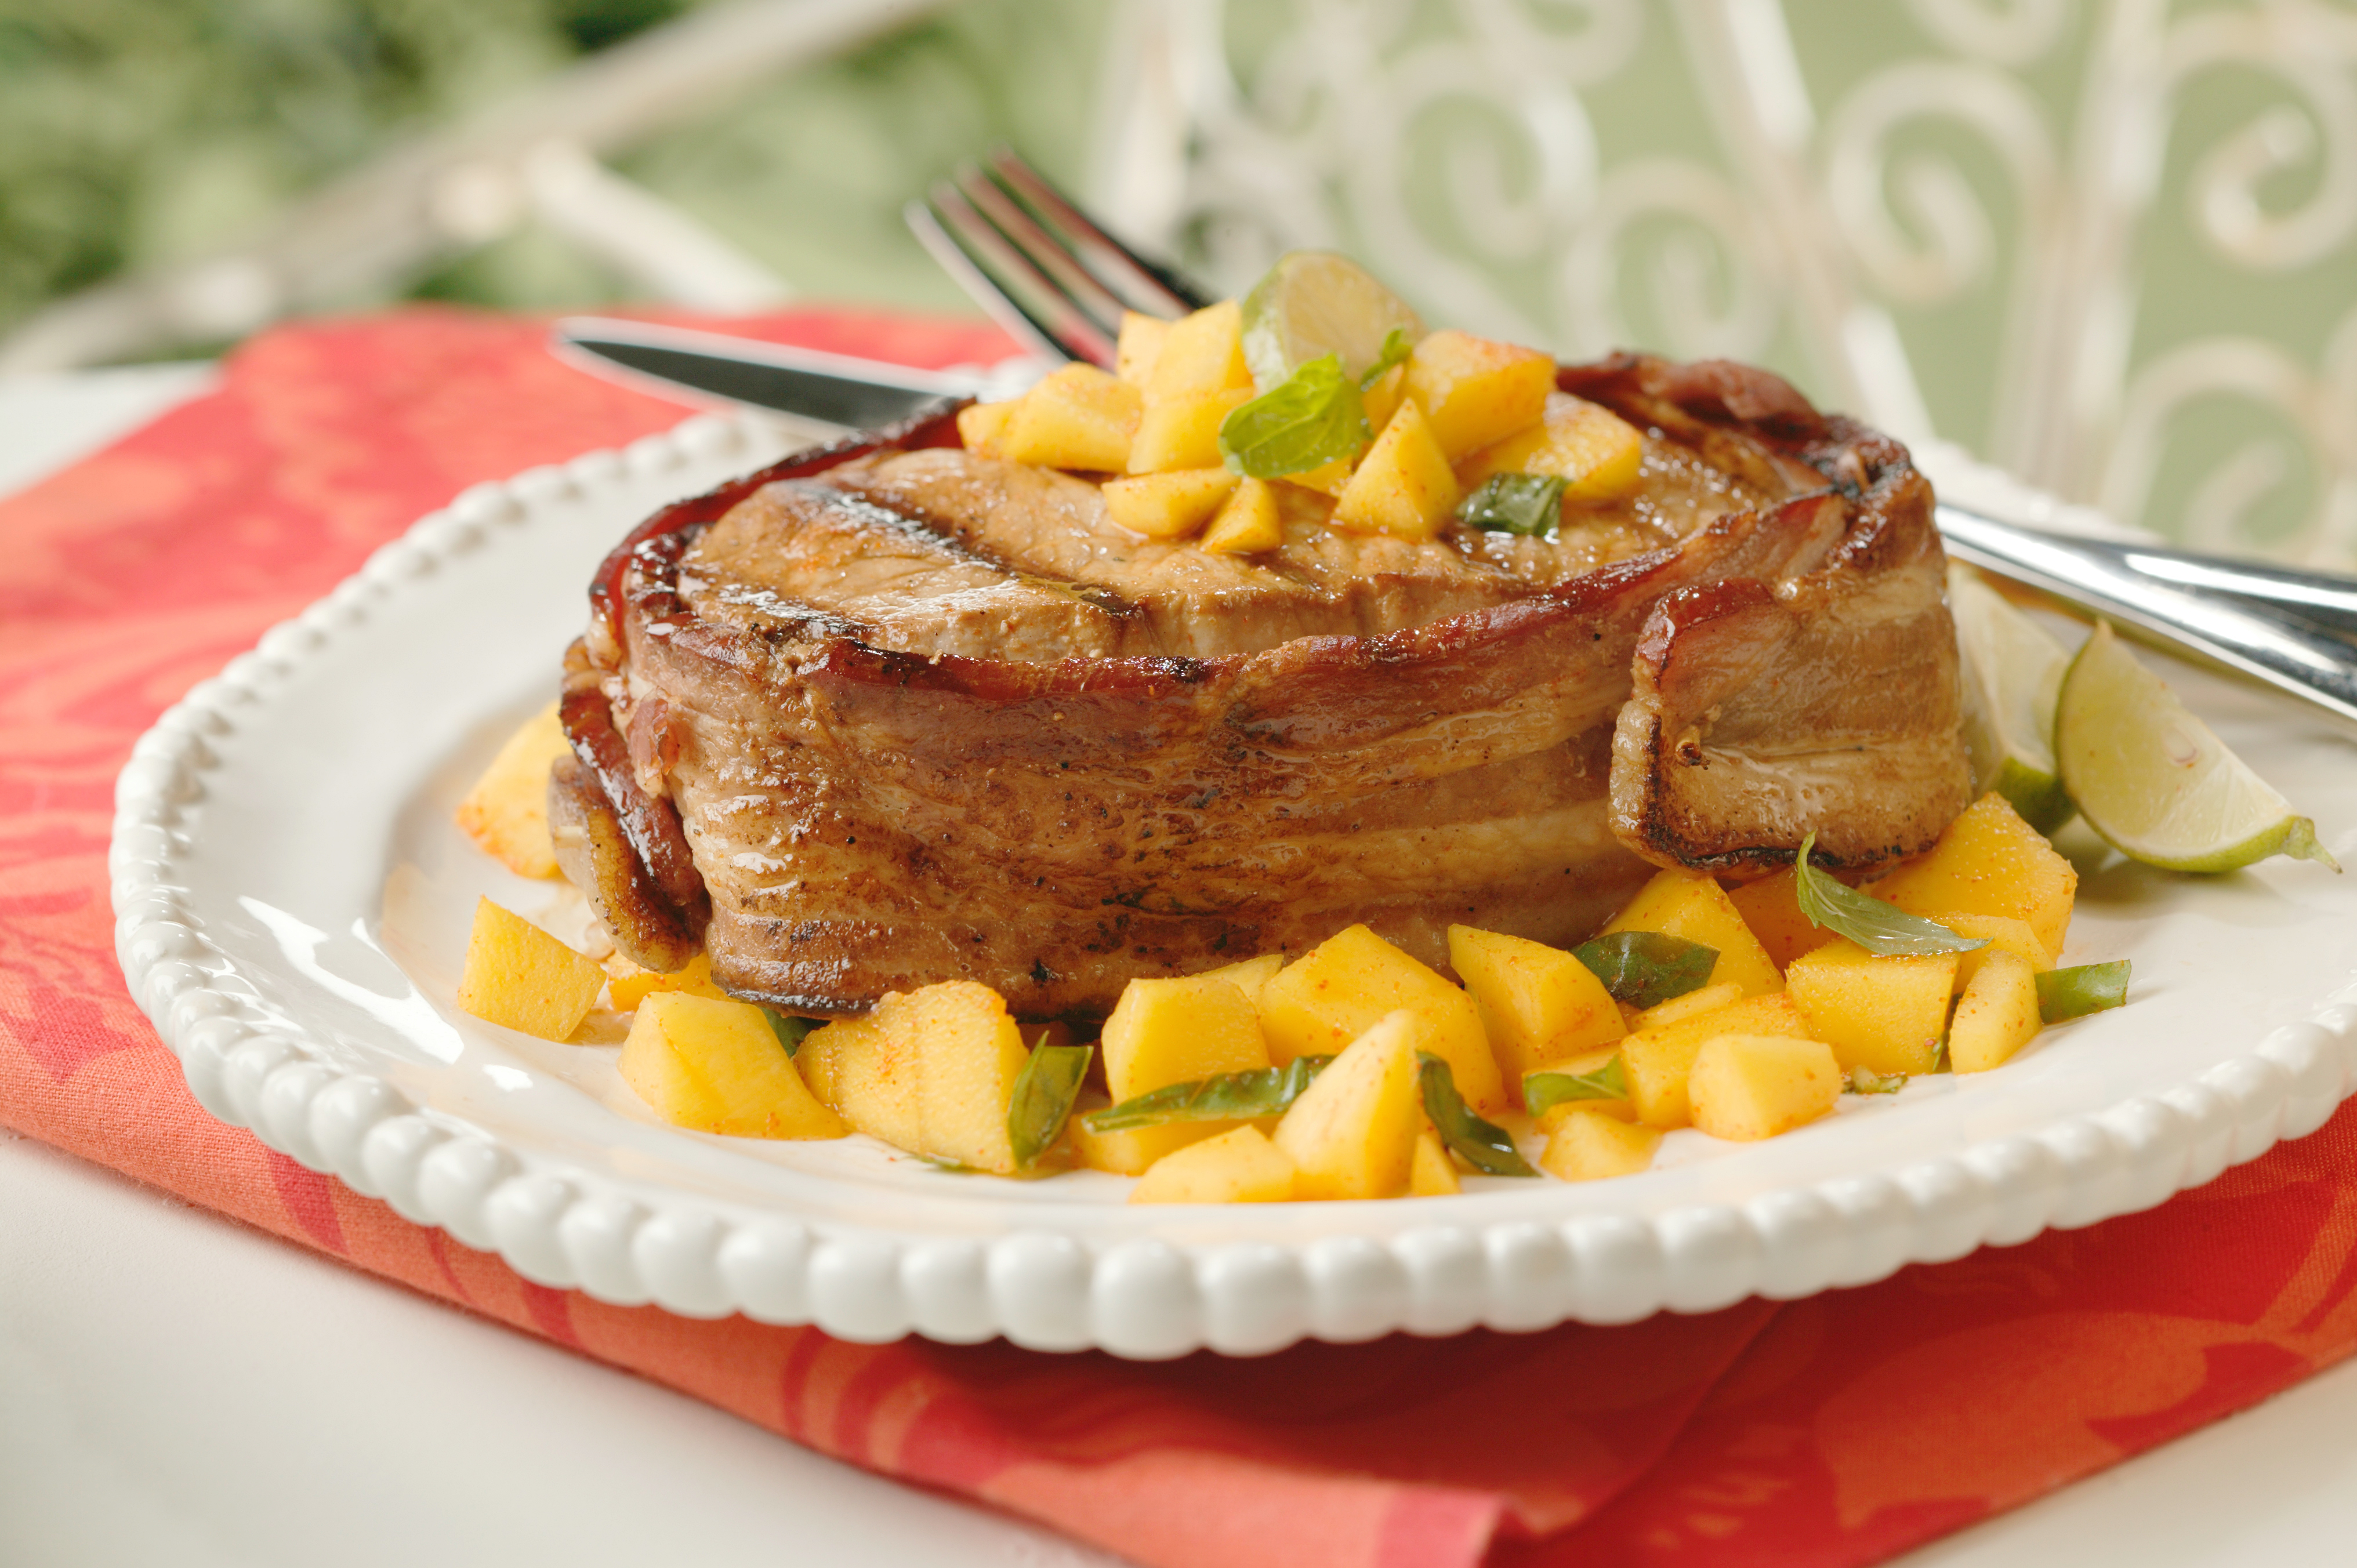 Pork chops wrapped in bacon recipes